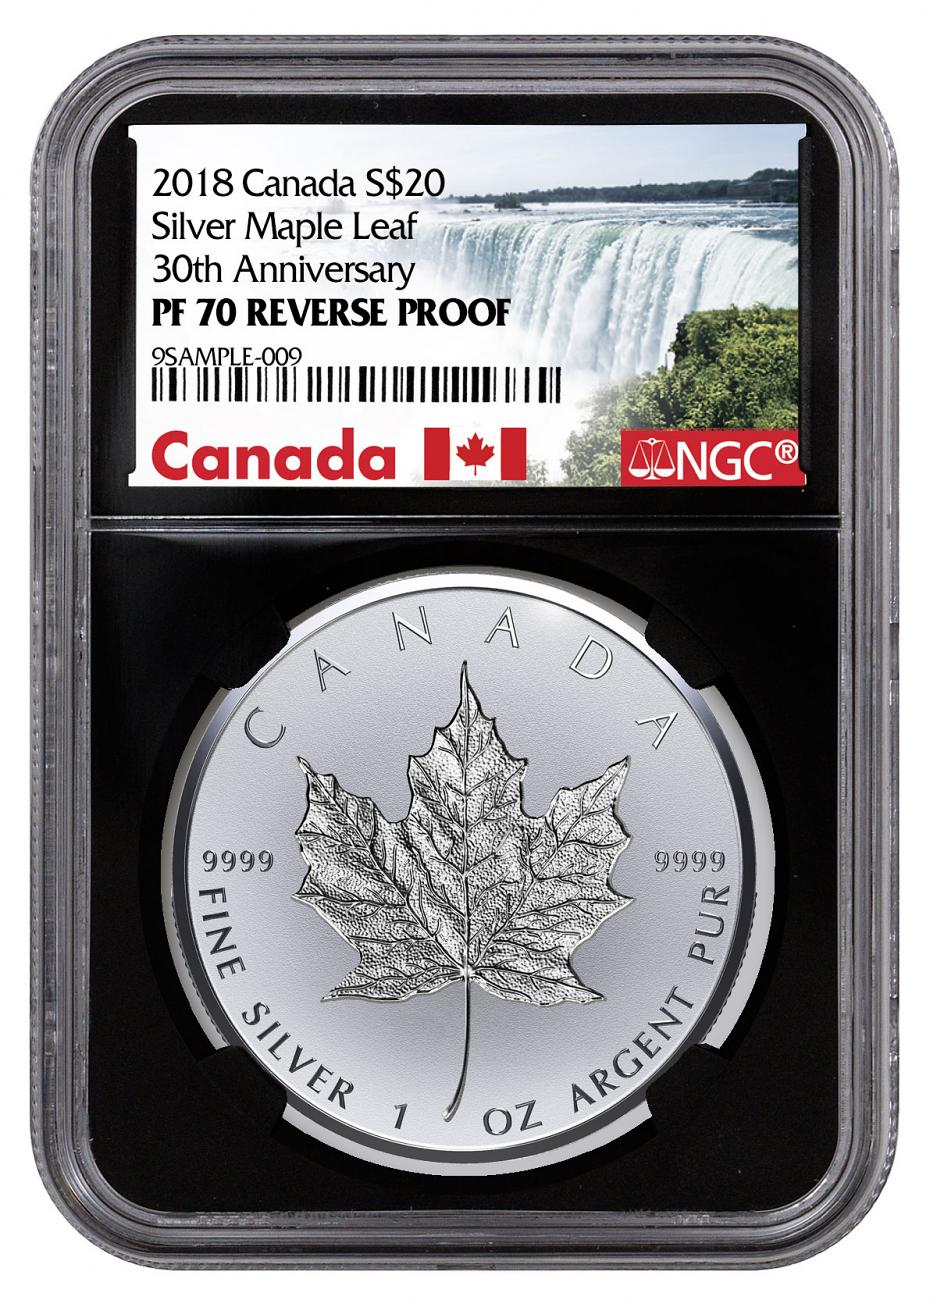 2018 Canada 1 oz Silver Maple Leaf - Incuse Reverse Proof $20 Coin NGC PF70 Black Core Holder Exclusive Canada Label